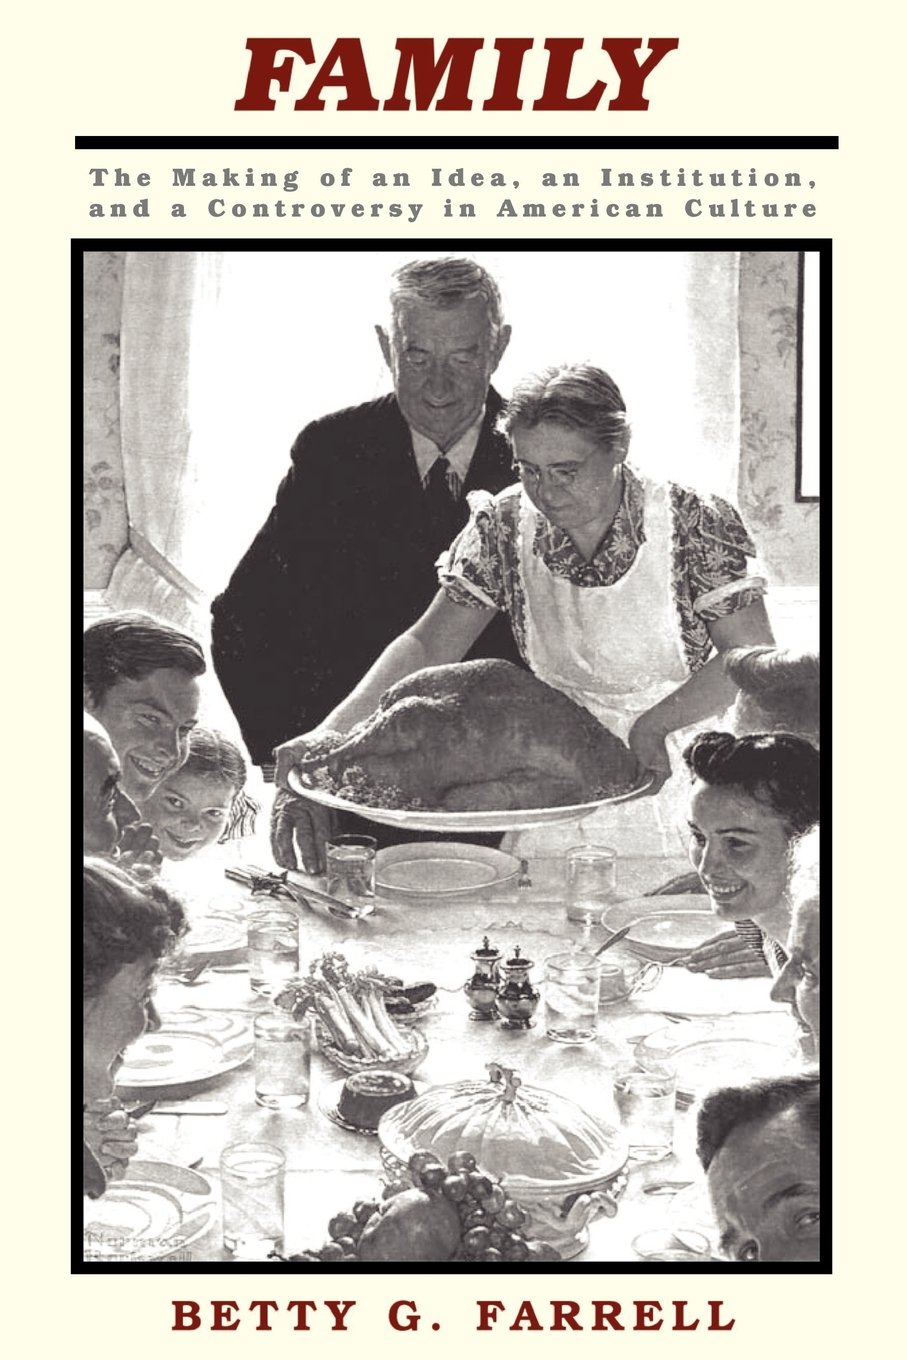 Family: The Making of an Idea, an Institution, and a Controversy in American Culture free download